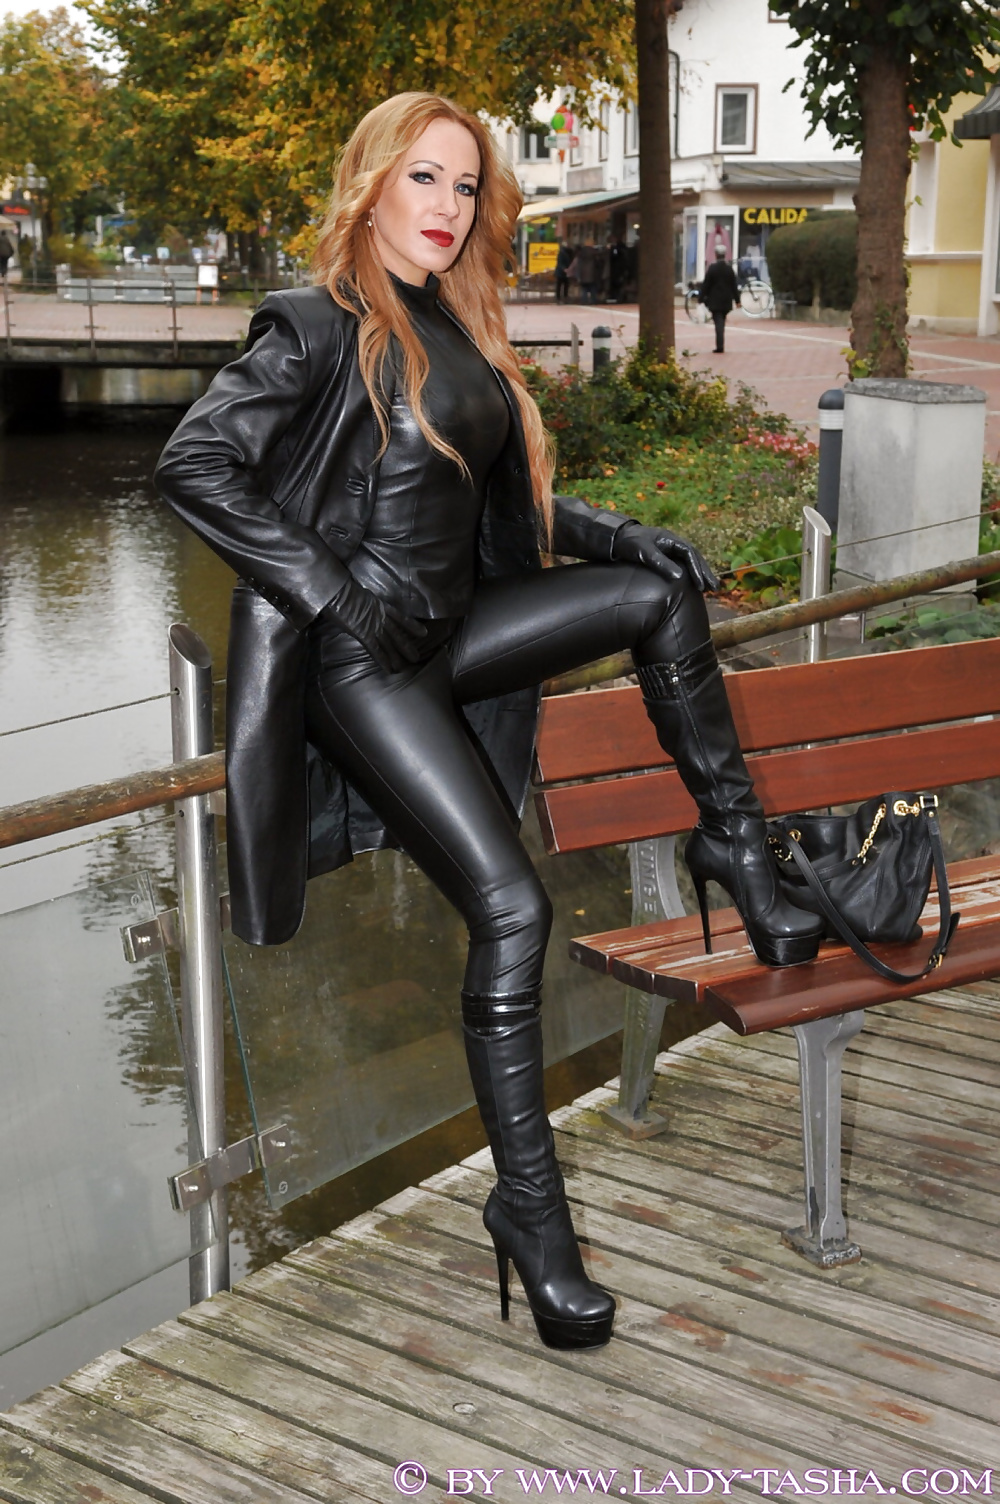 Leather boots bitch